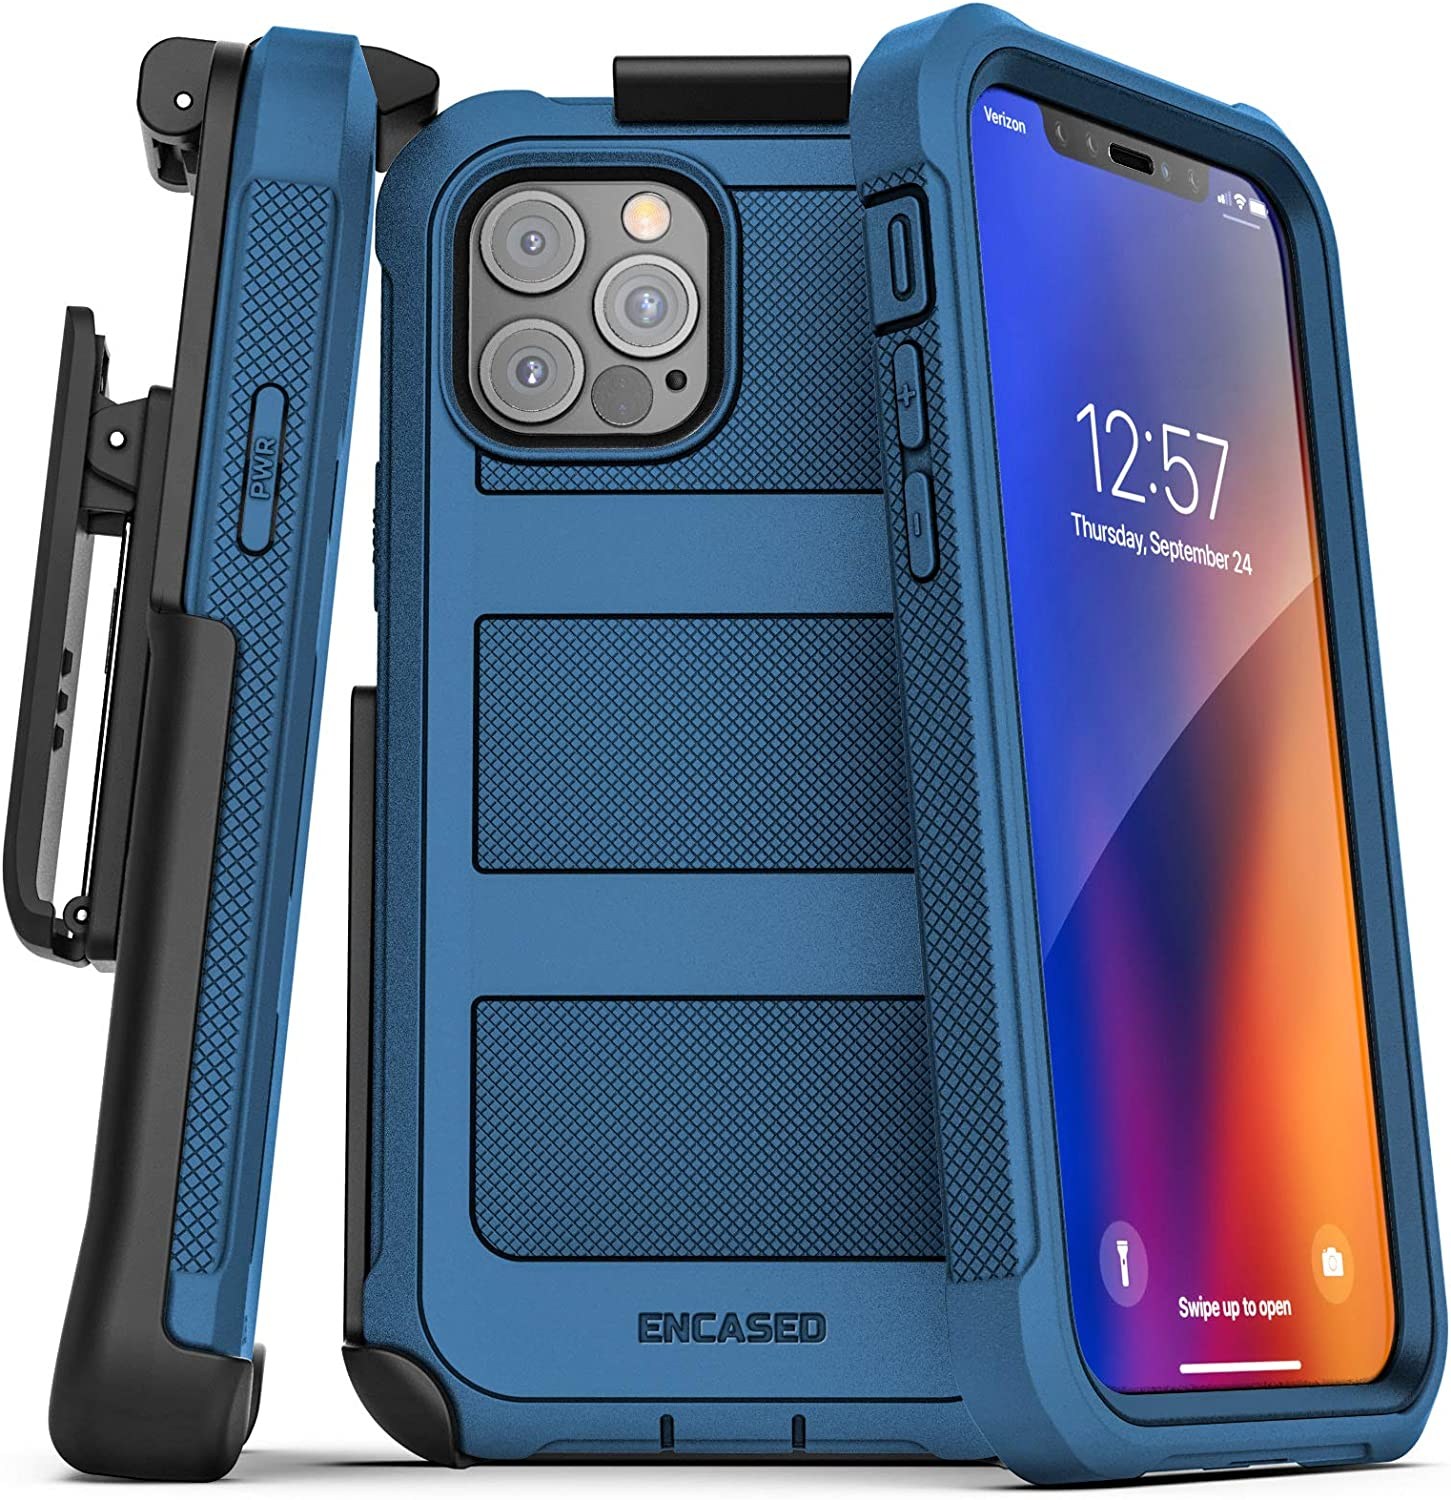 Encased Falcon Armor Compatible with iPhone 12 Pro Case with Screen Protector and Belt Clip Protective Full Body Cover with Built-in Screen Guard and Holster - Blue